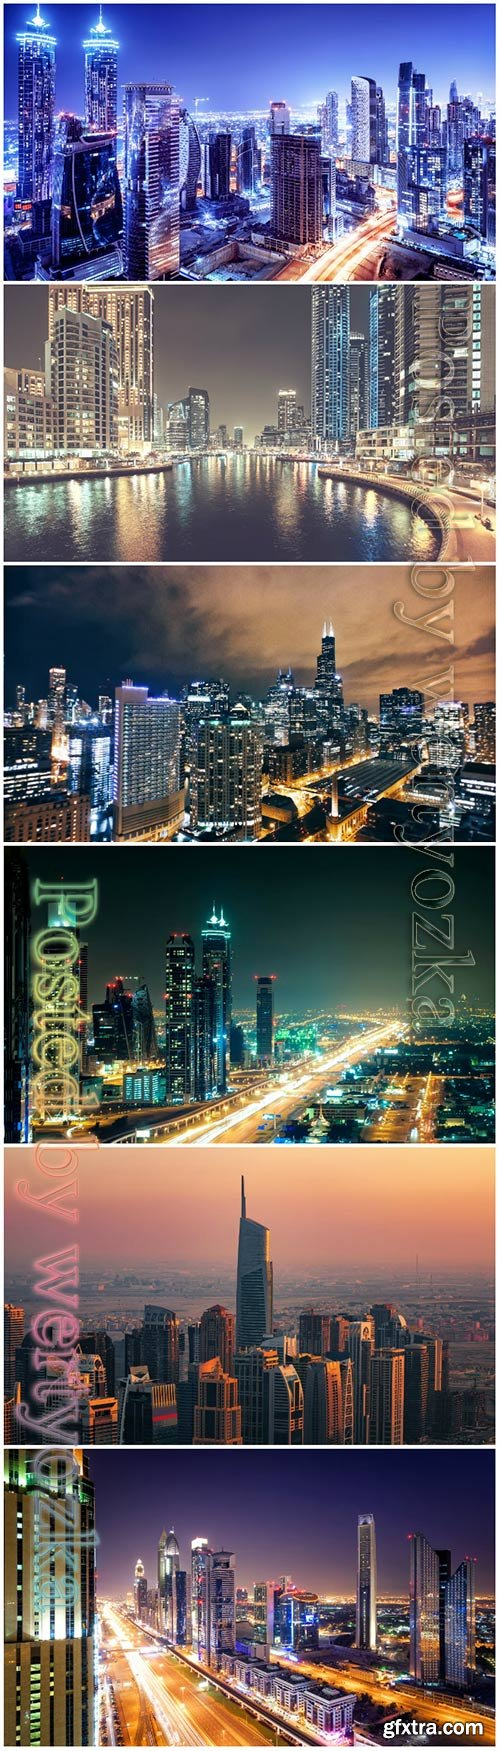 Night cities beautiful stock photo